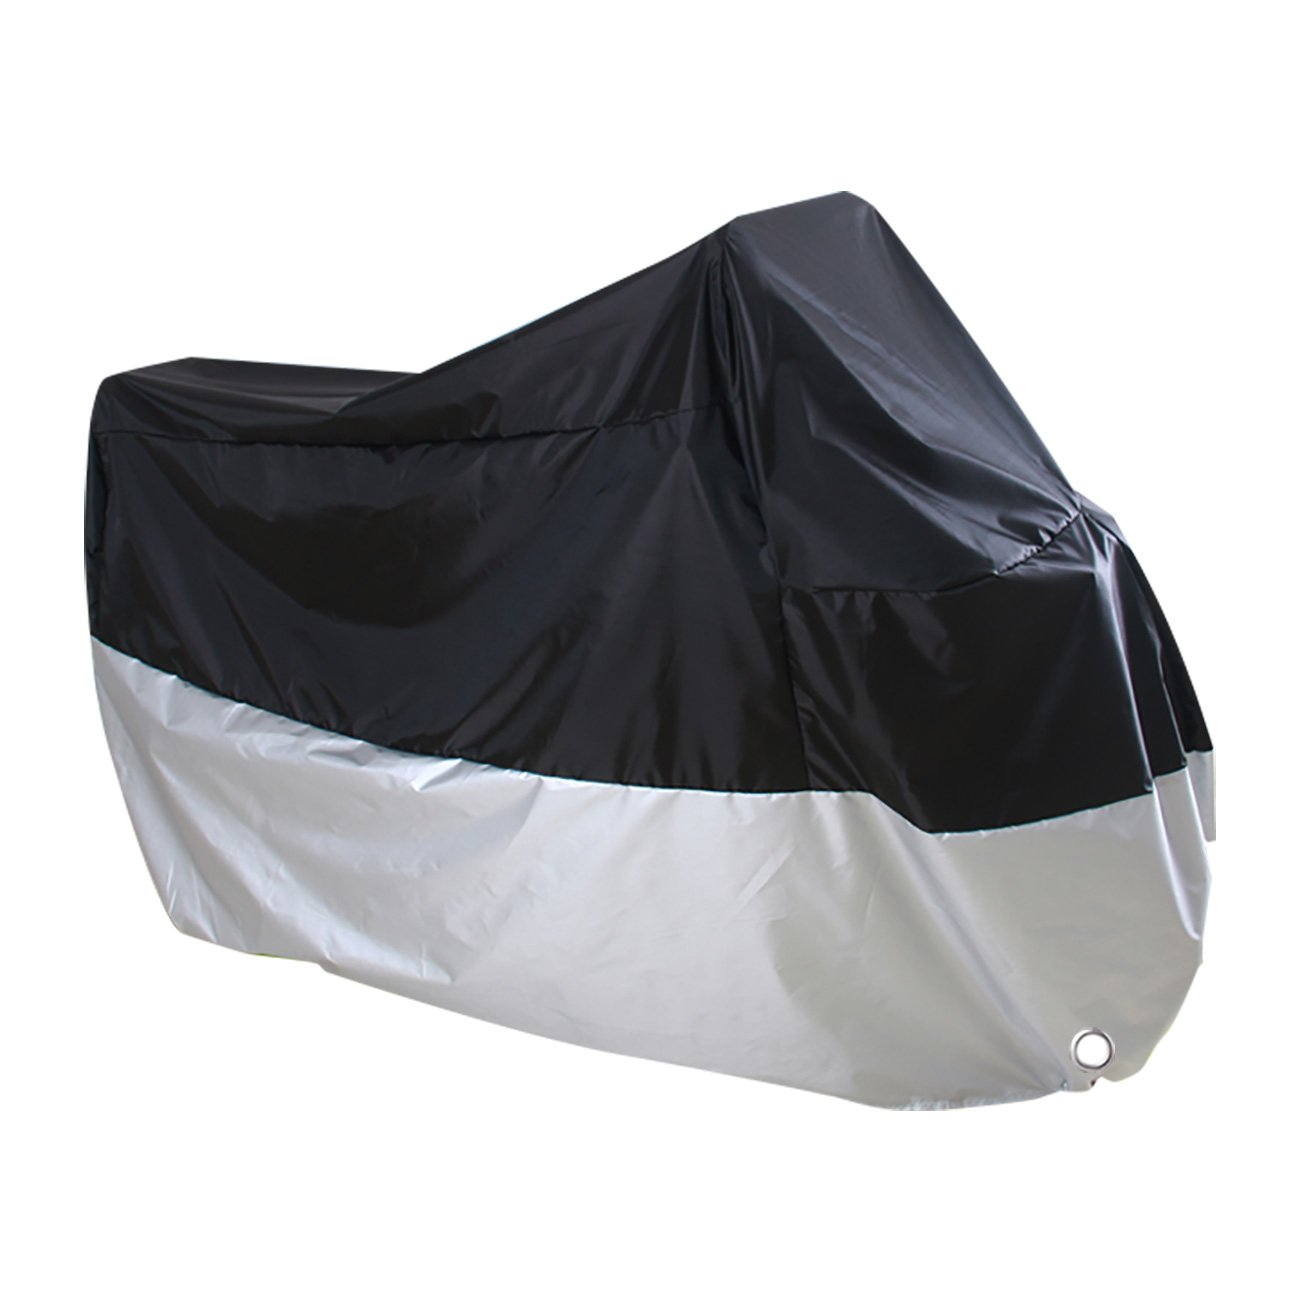 Waterproof Motorcycle Cover - Protects Against Rain, Sun, UV, Dust, Wind, Hail - Includes Storage Bag - Anti-Theft Lock Holes - Buckle for Wind Resistance, 107 x 43.3 x 51 Inches Juvale